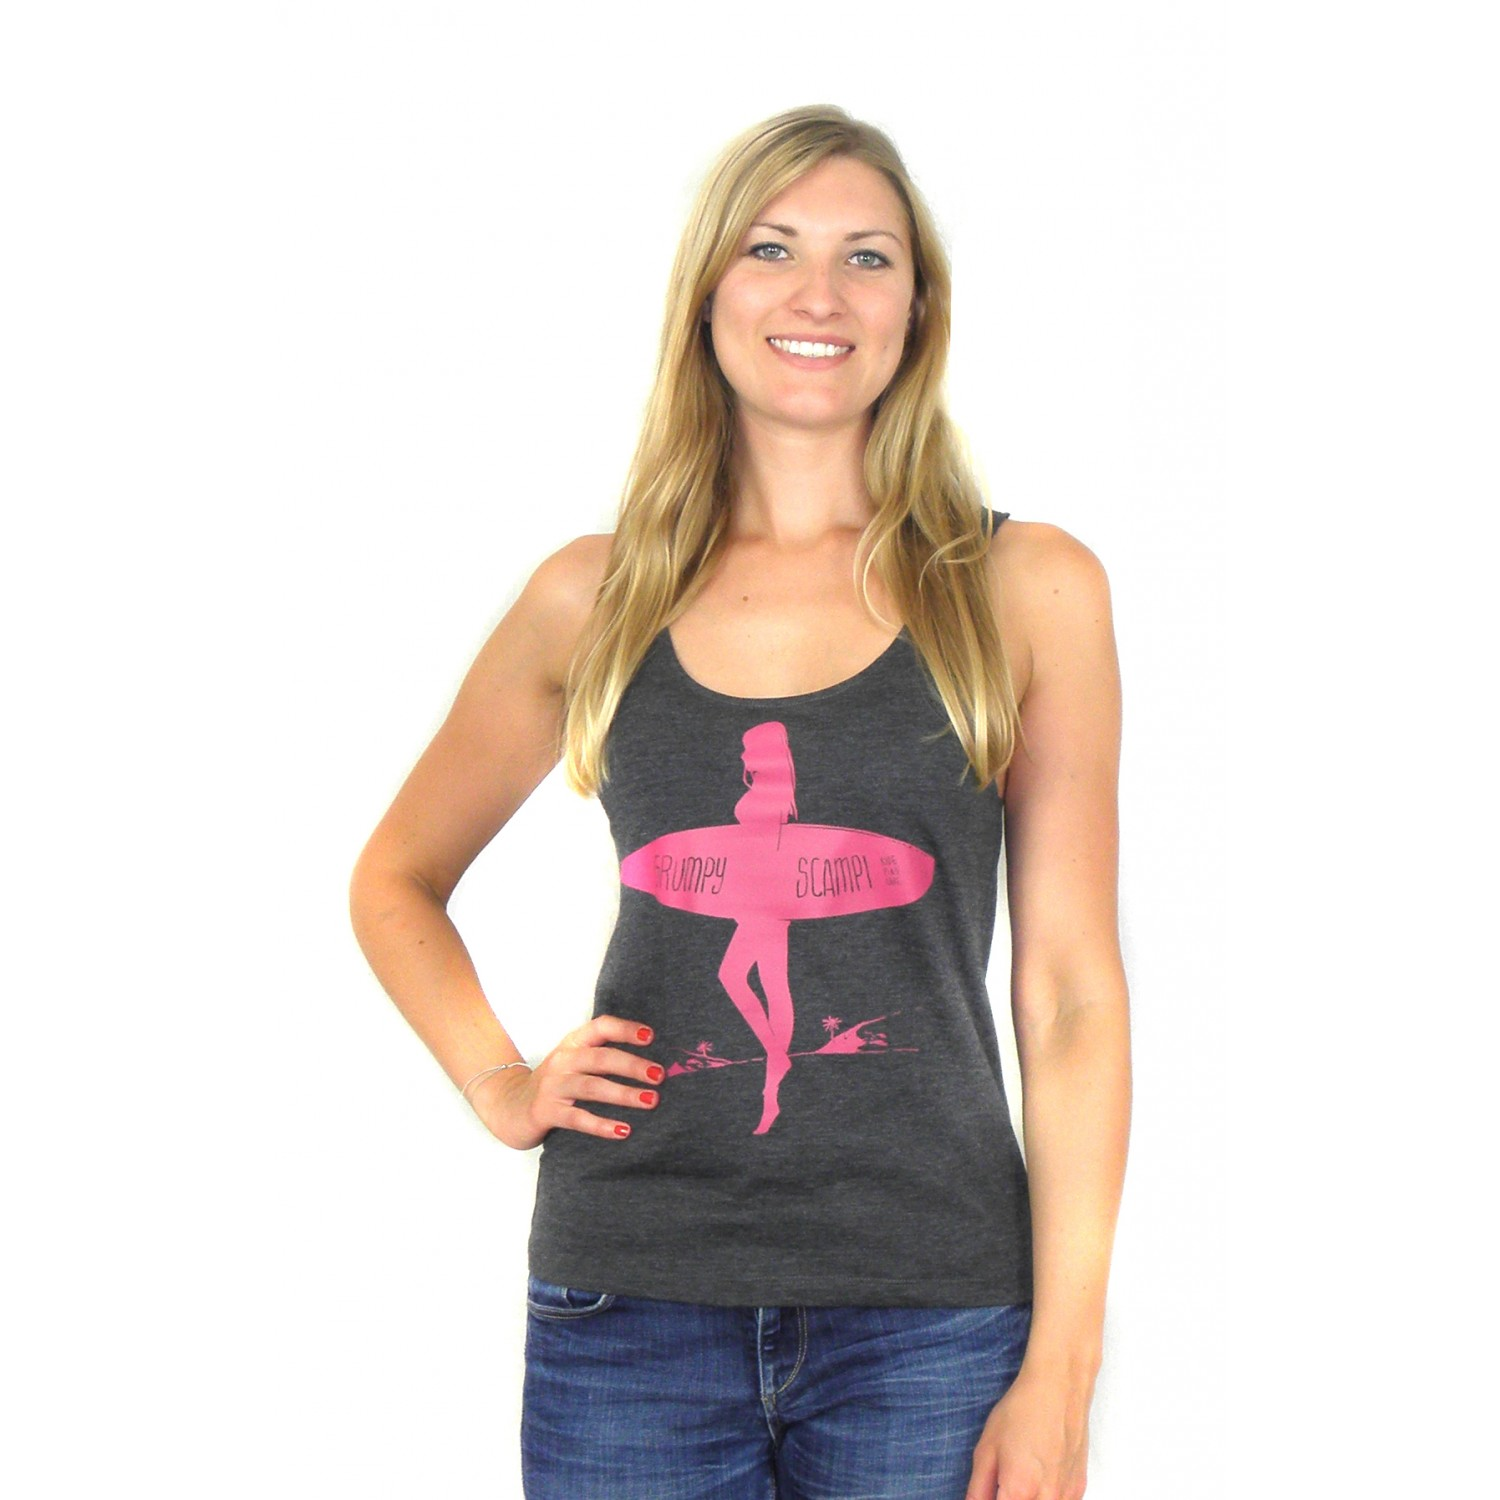 BEAUTY & A BOARD CARBON Beach Tanktop